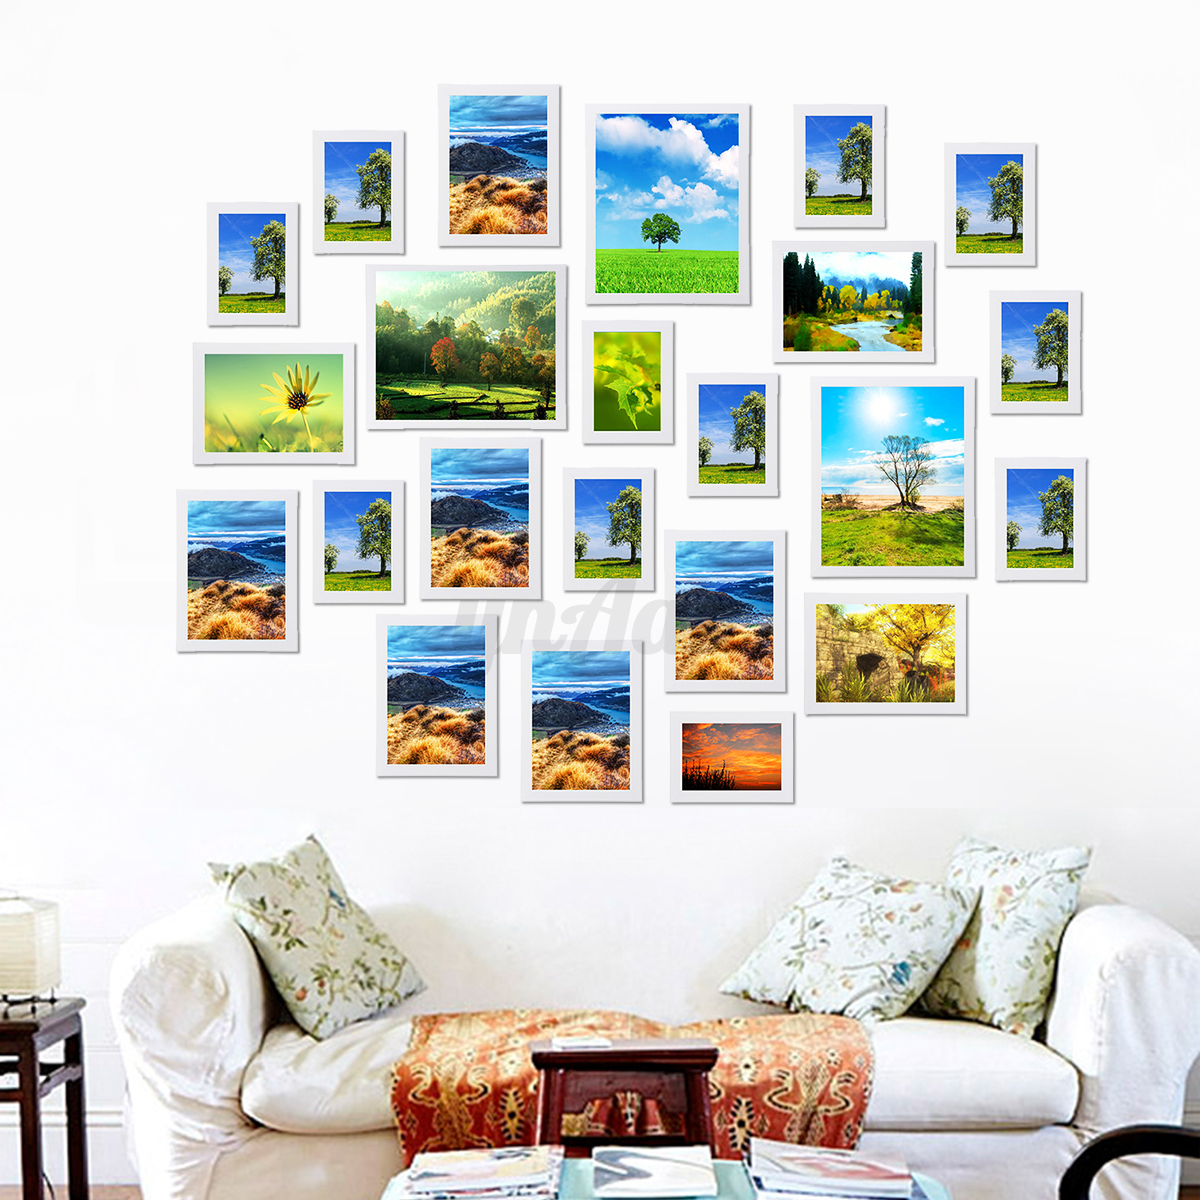 Home Decor Wall Art 2326Pcs Multi Photo Picture Frames Set Diy Home Decor Wall Art